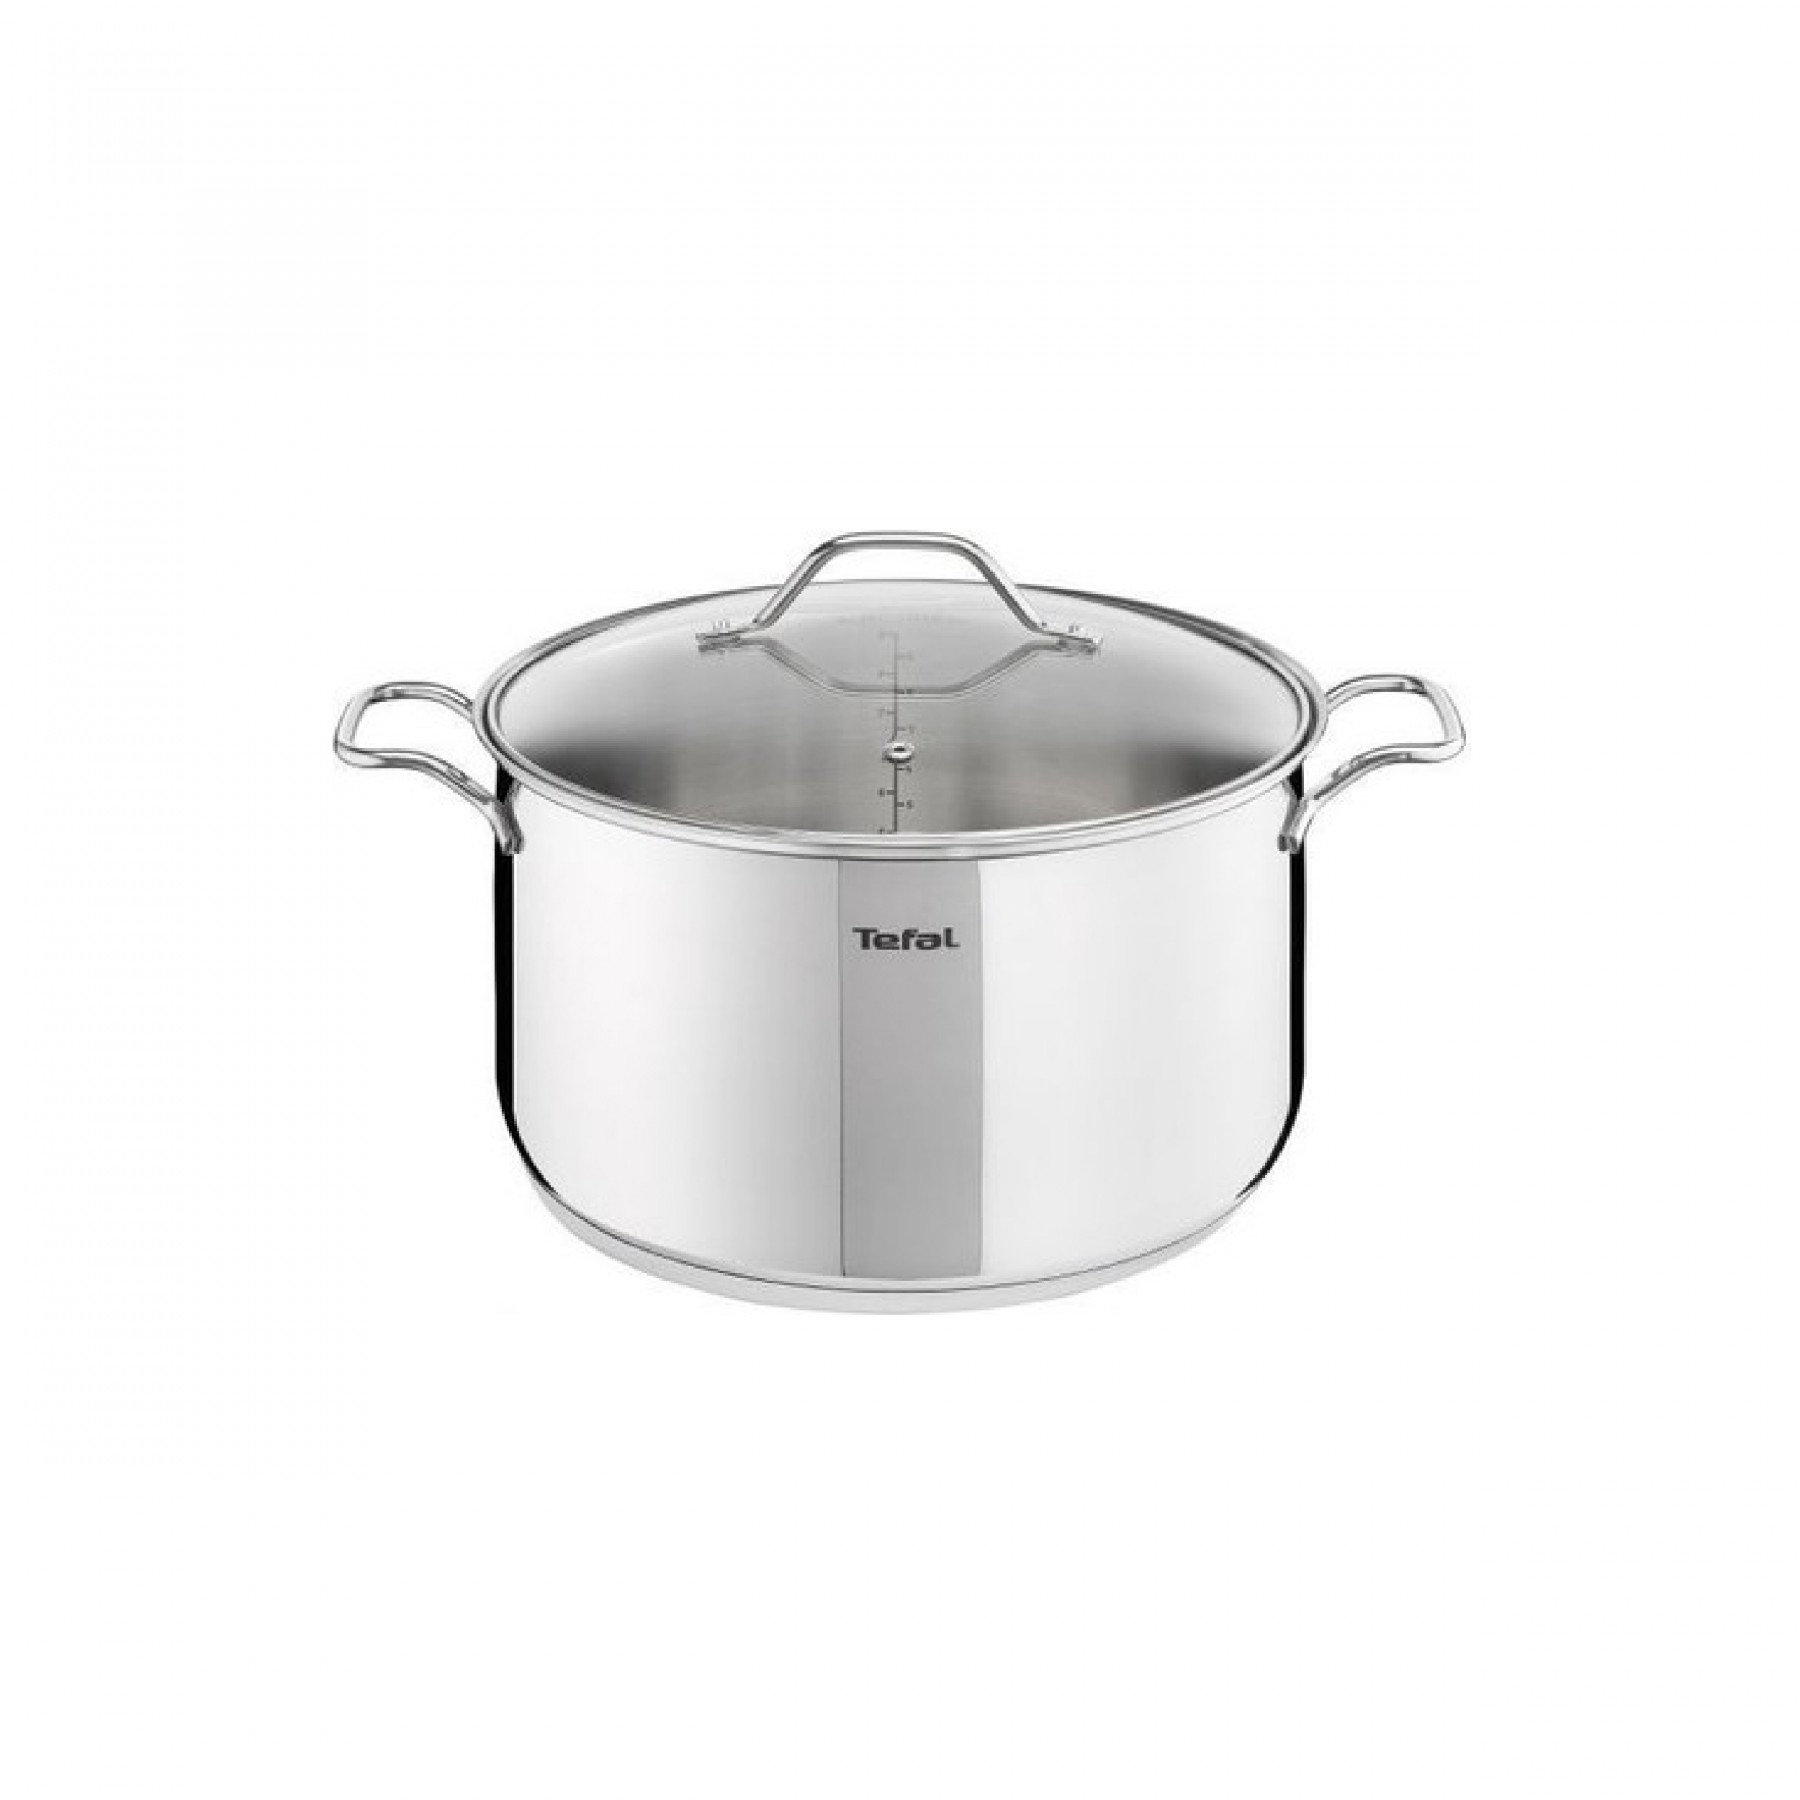 TEFAL Stewpot Intuition 30cm Stainless Steel B9086944